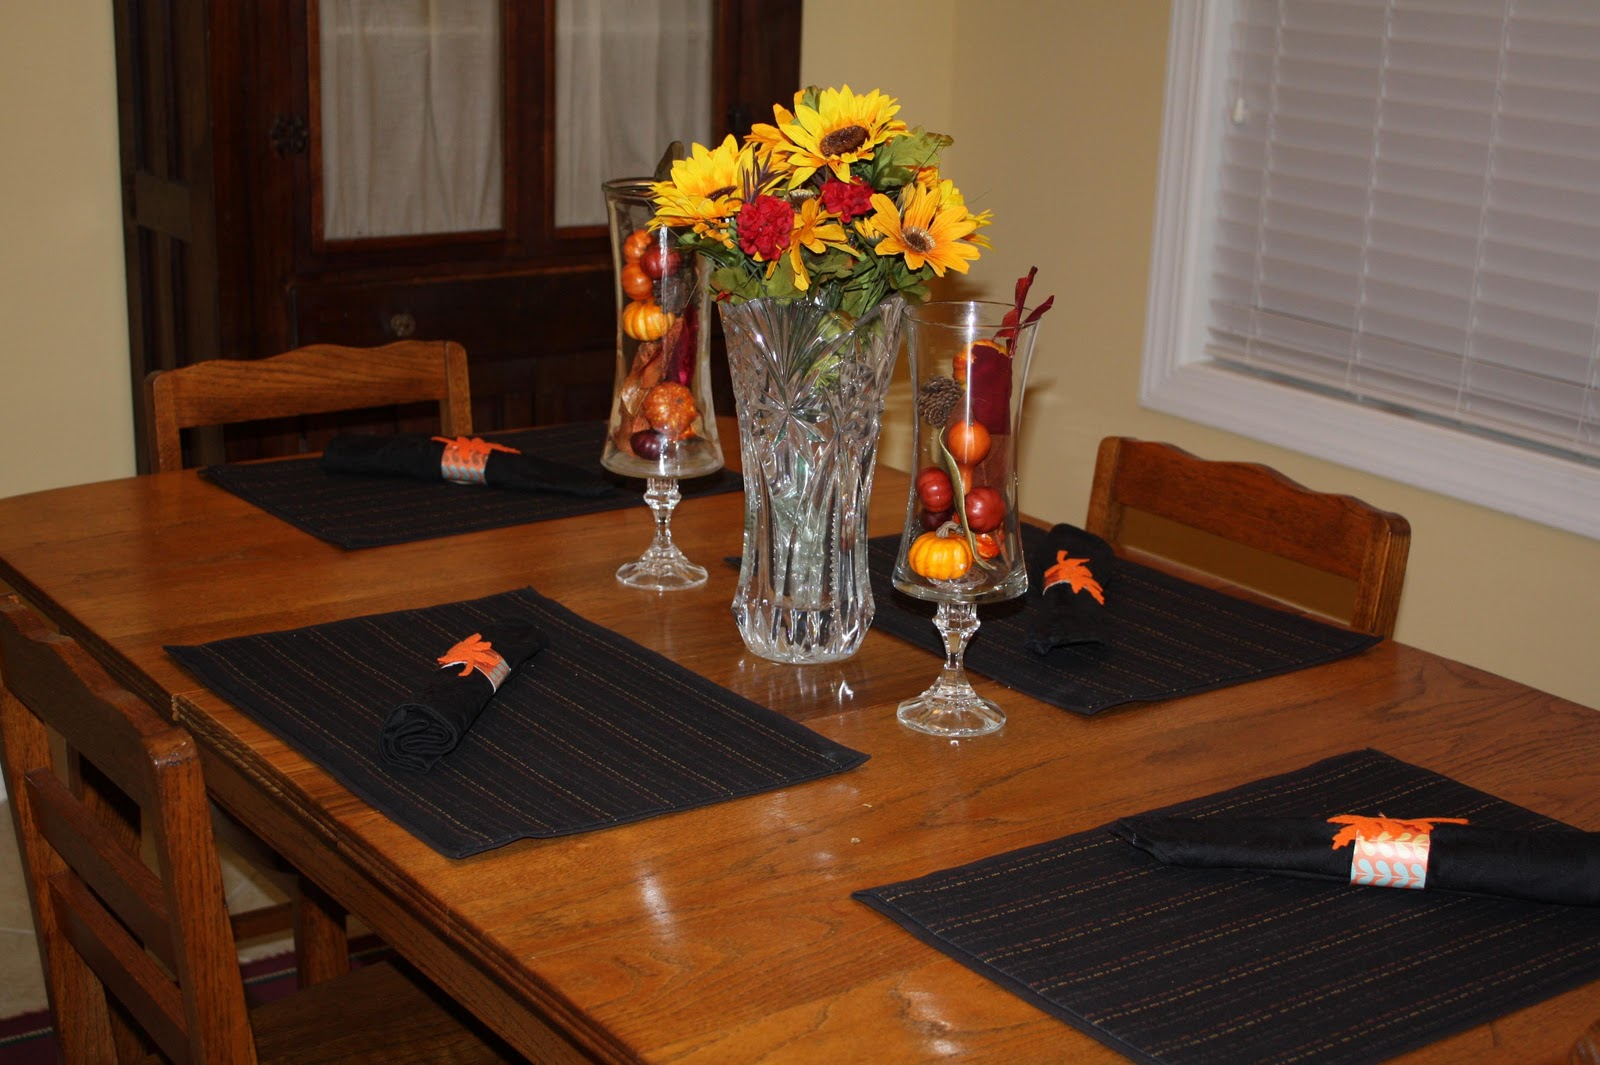 Southern scraps thanksgiving table decor and napkin rings